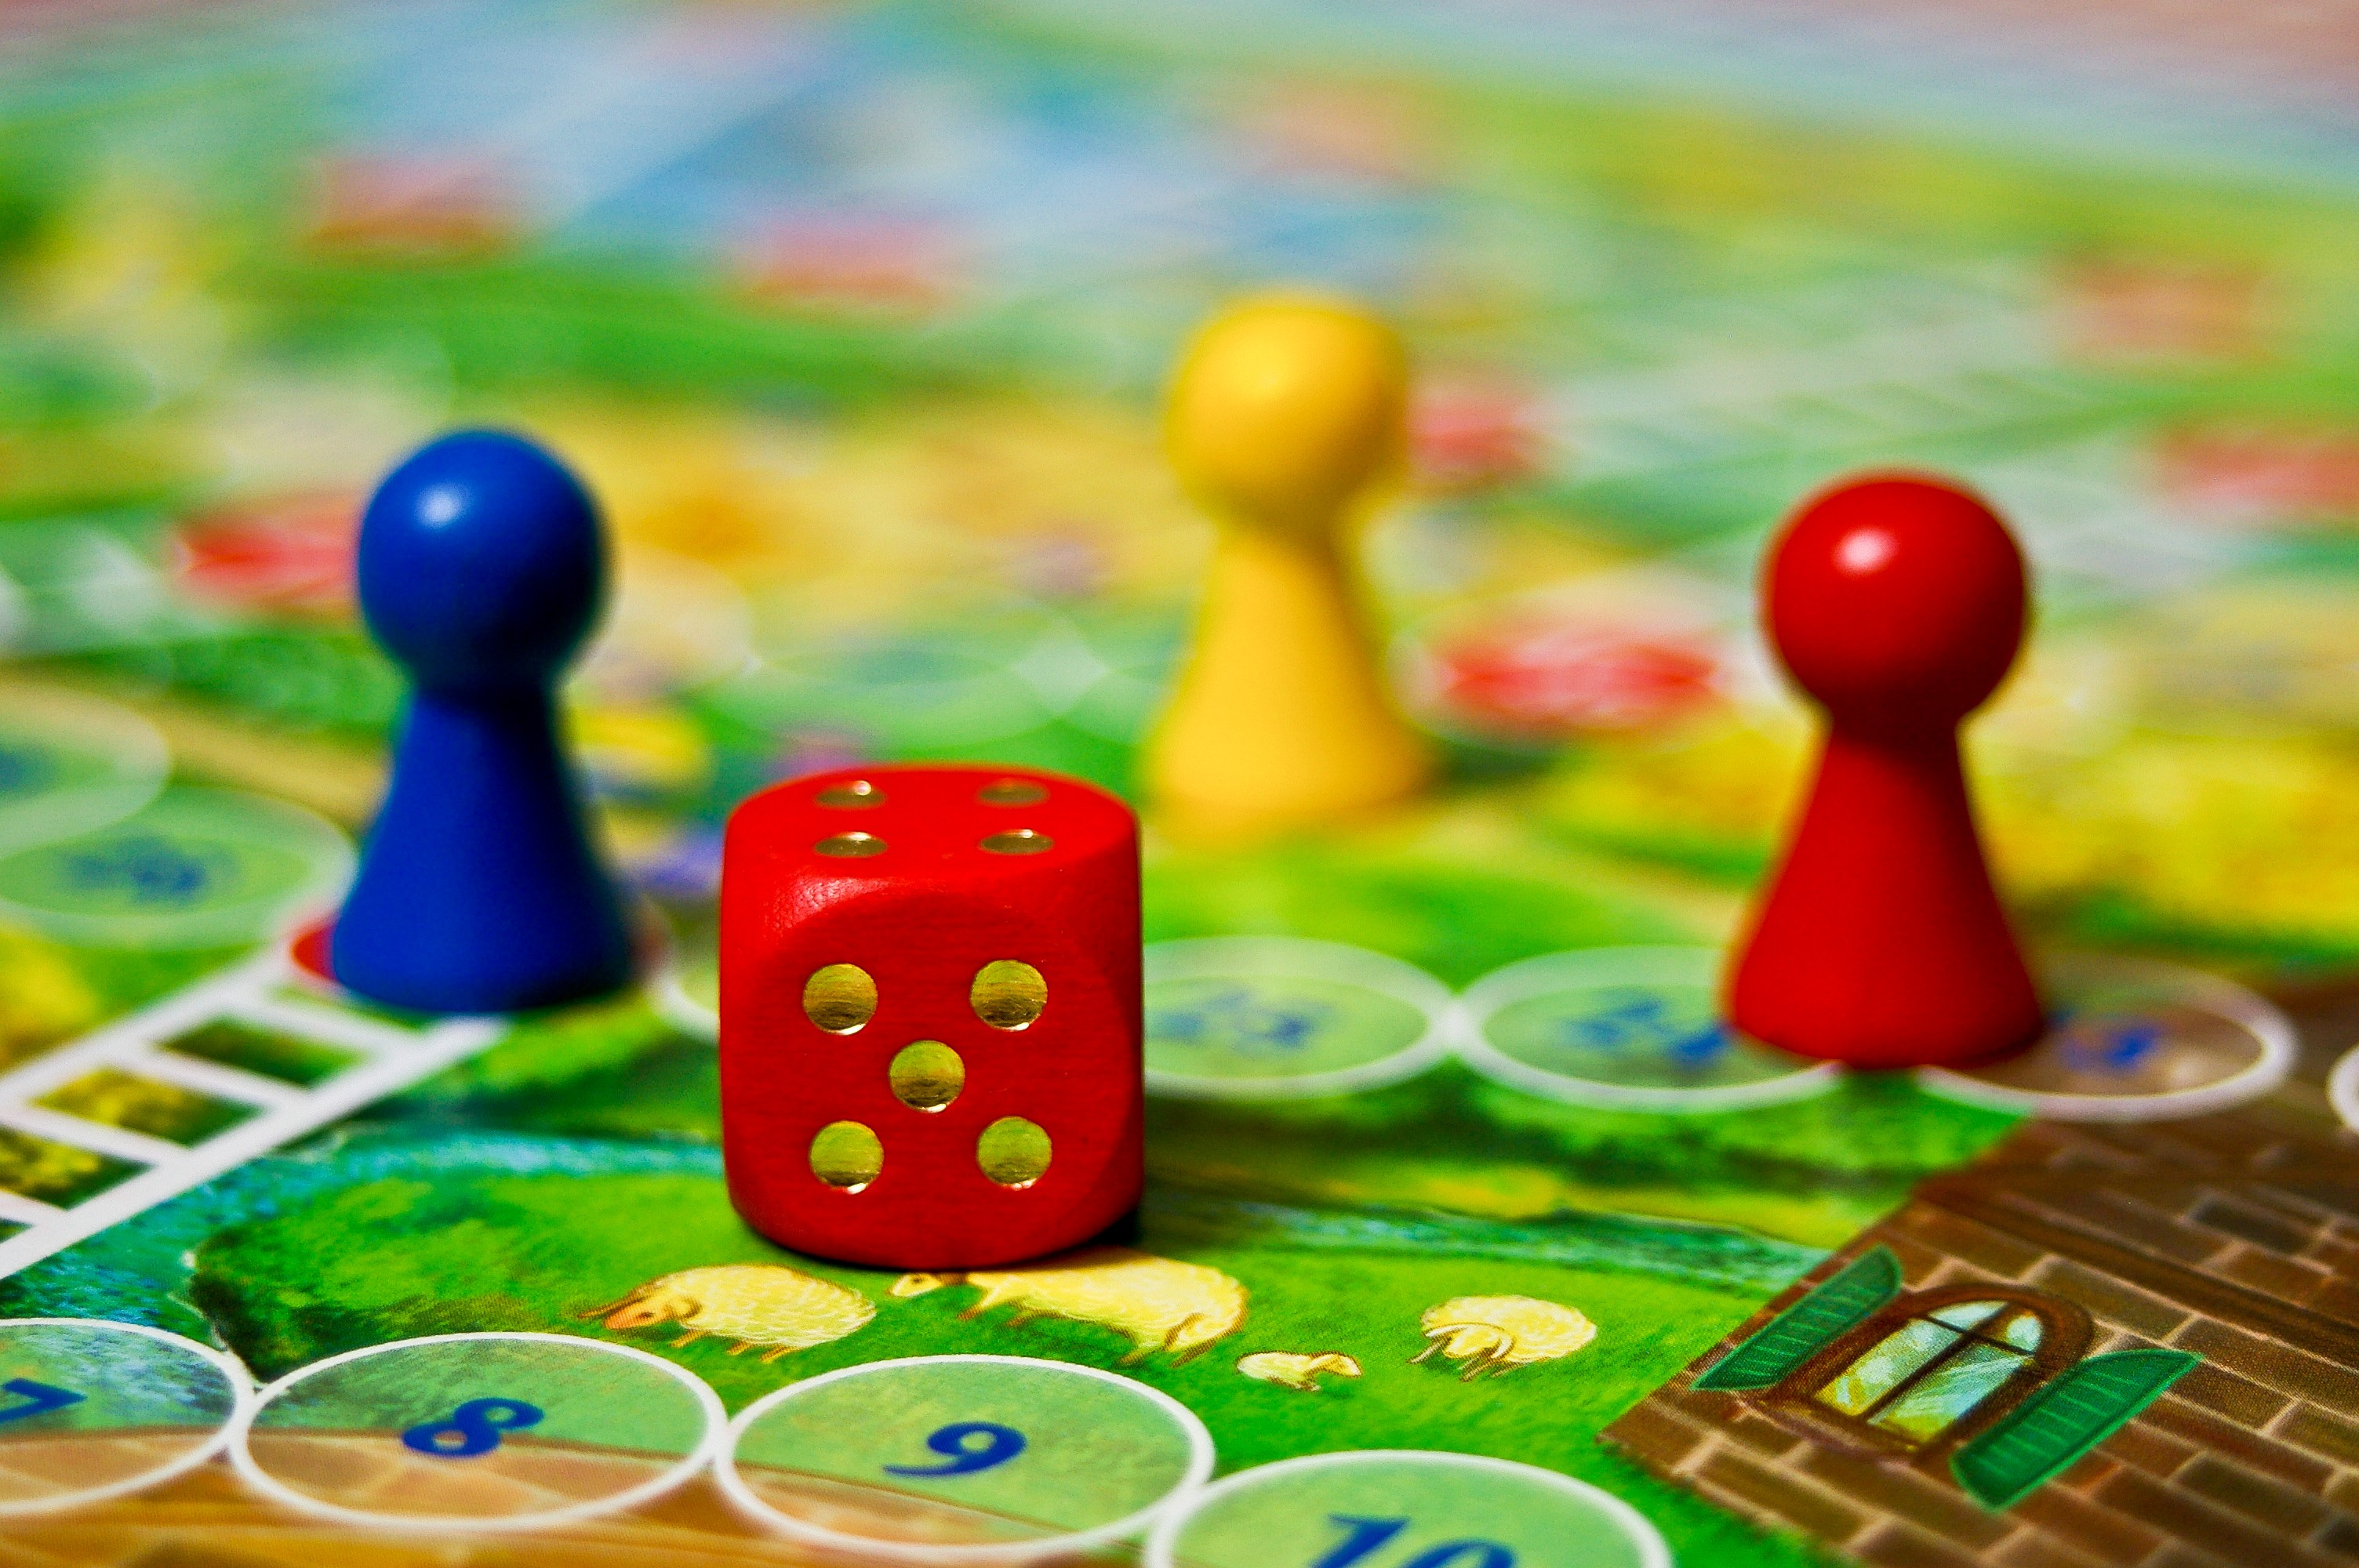 is-it-time-to-stop-letting-my-daughter-win-at-games_161891